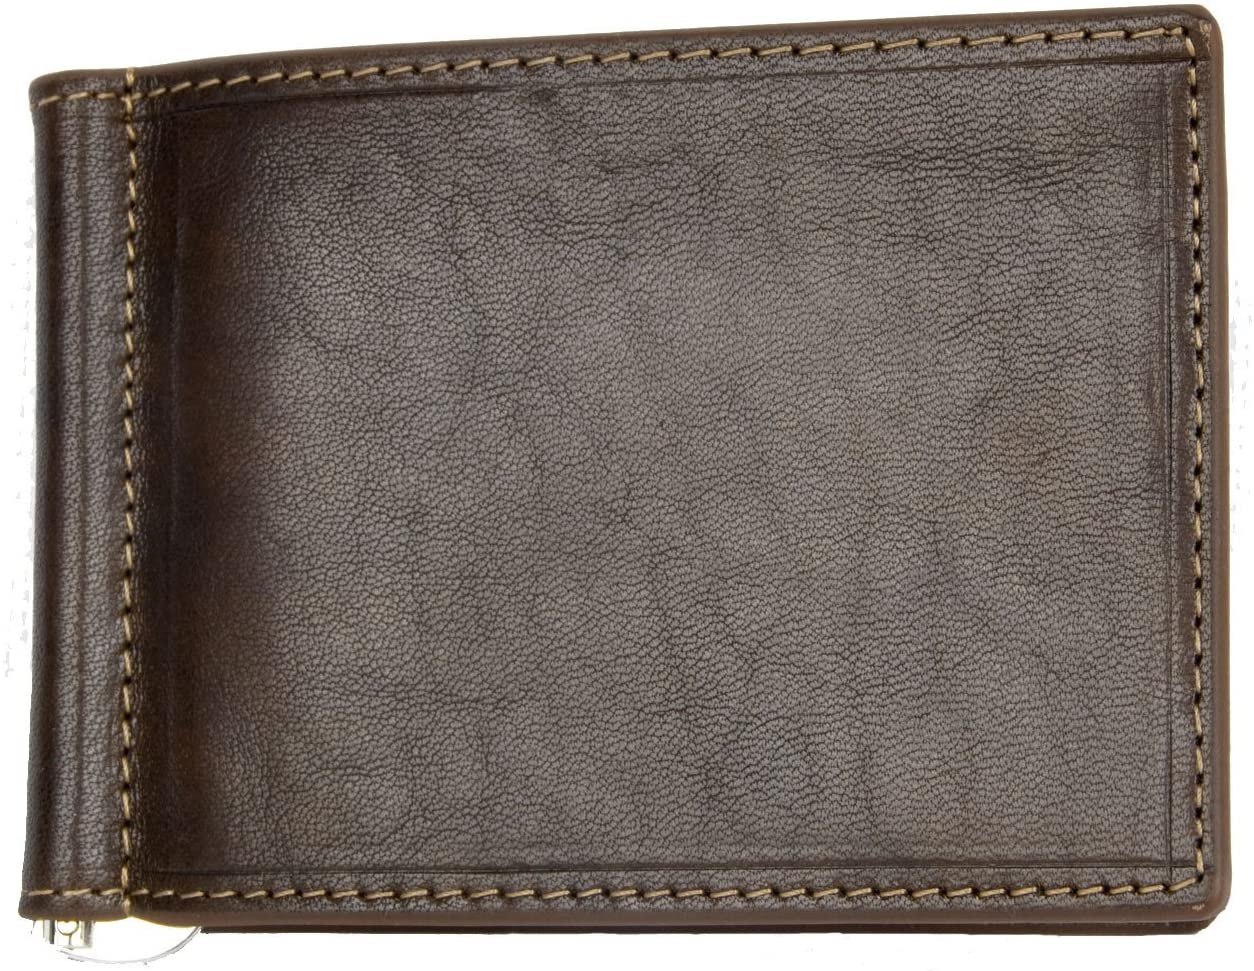 Exclusive Brown Italian Small Genuine Leather Wallet Without Coin Pocket